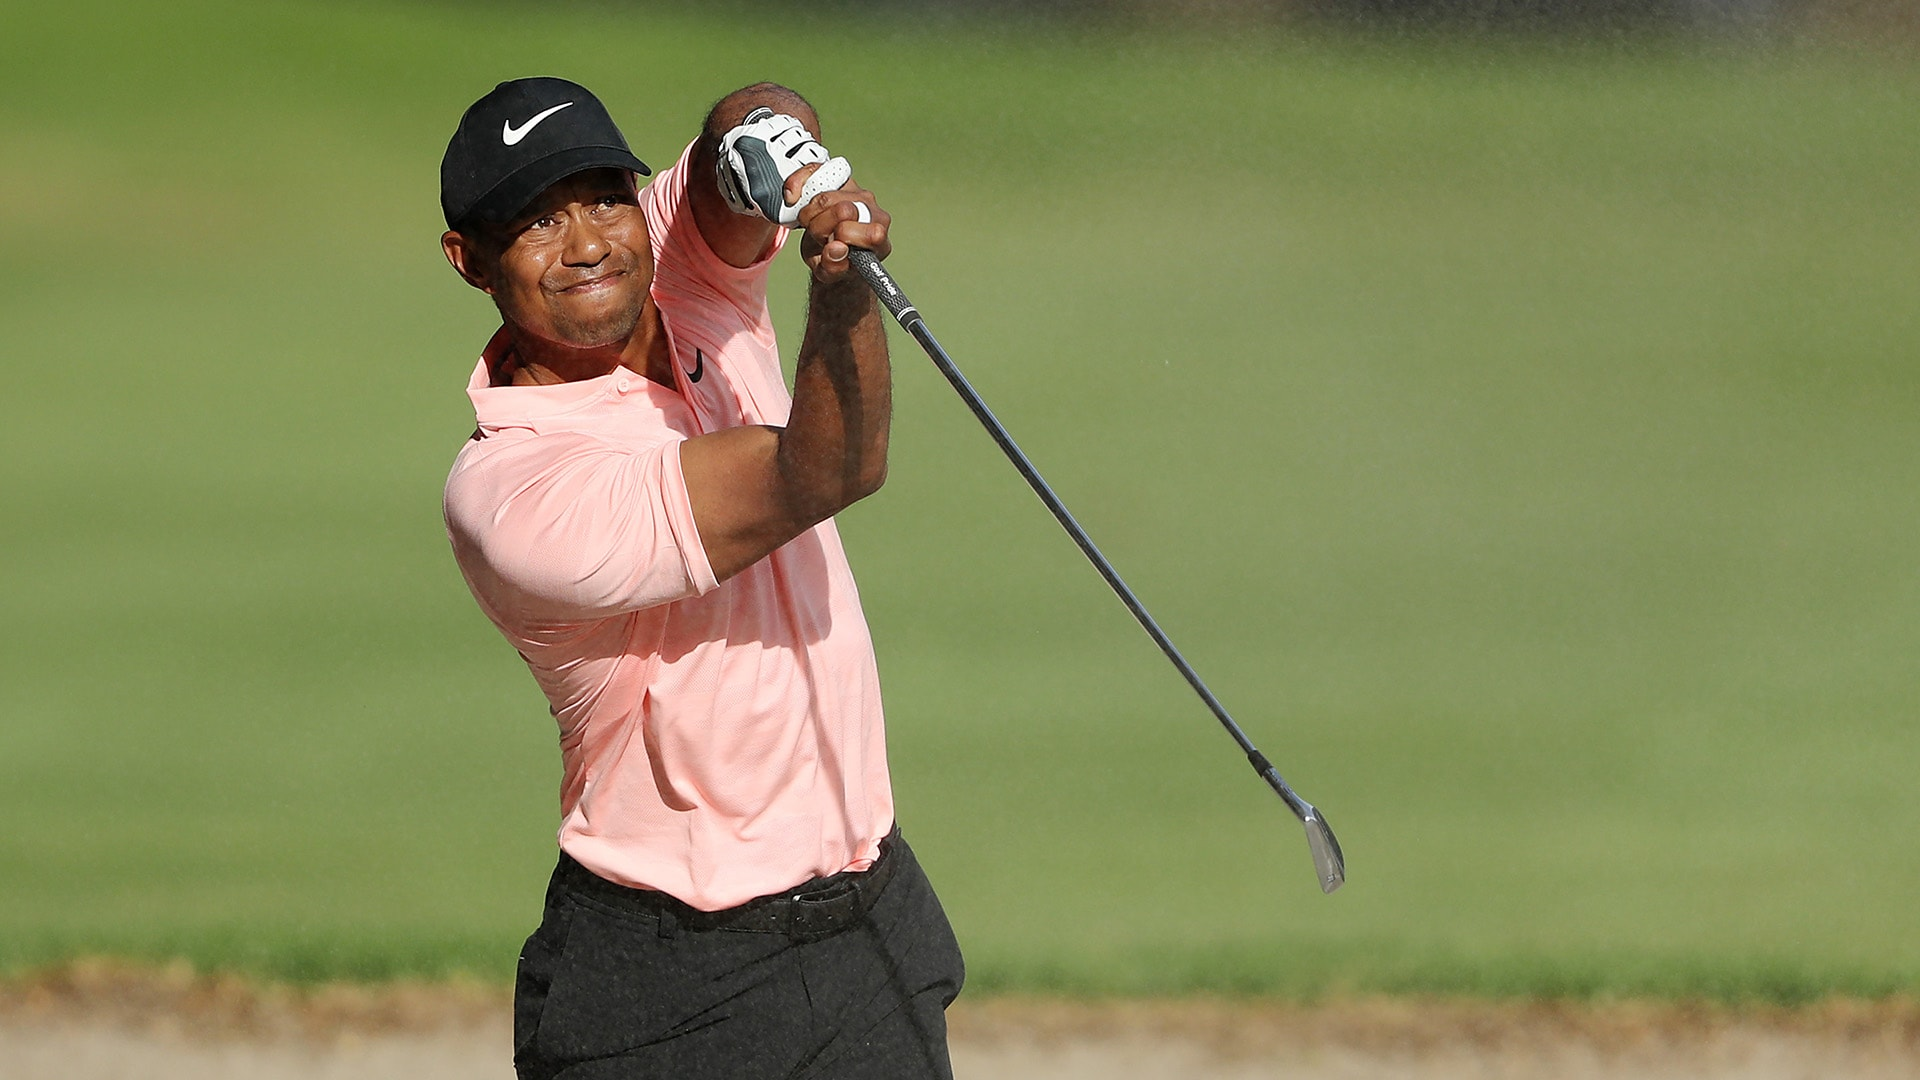 Tiger Woods Makes Par On 9 With Spectacular Shot From Fairway Bunker Golf Channel